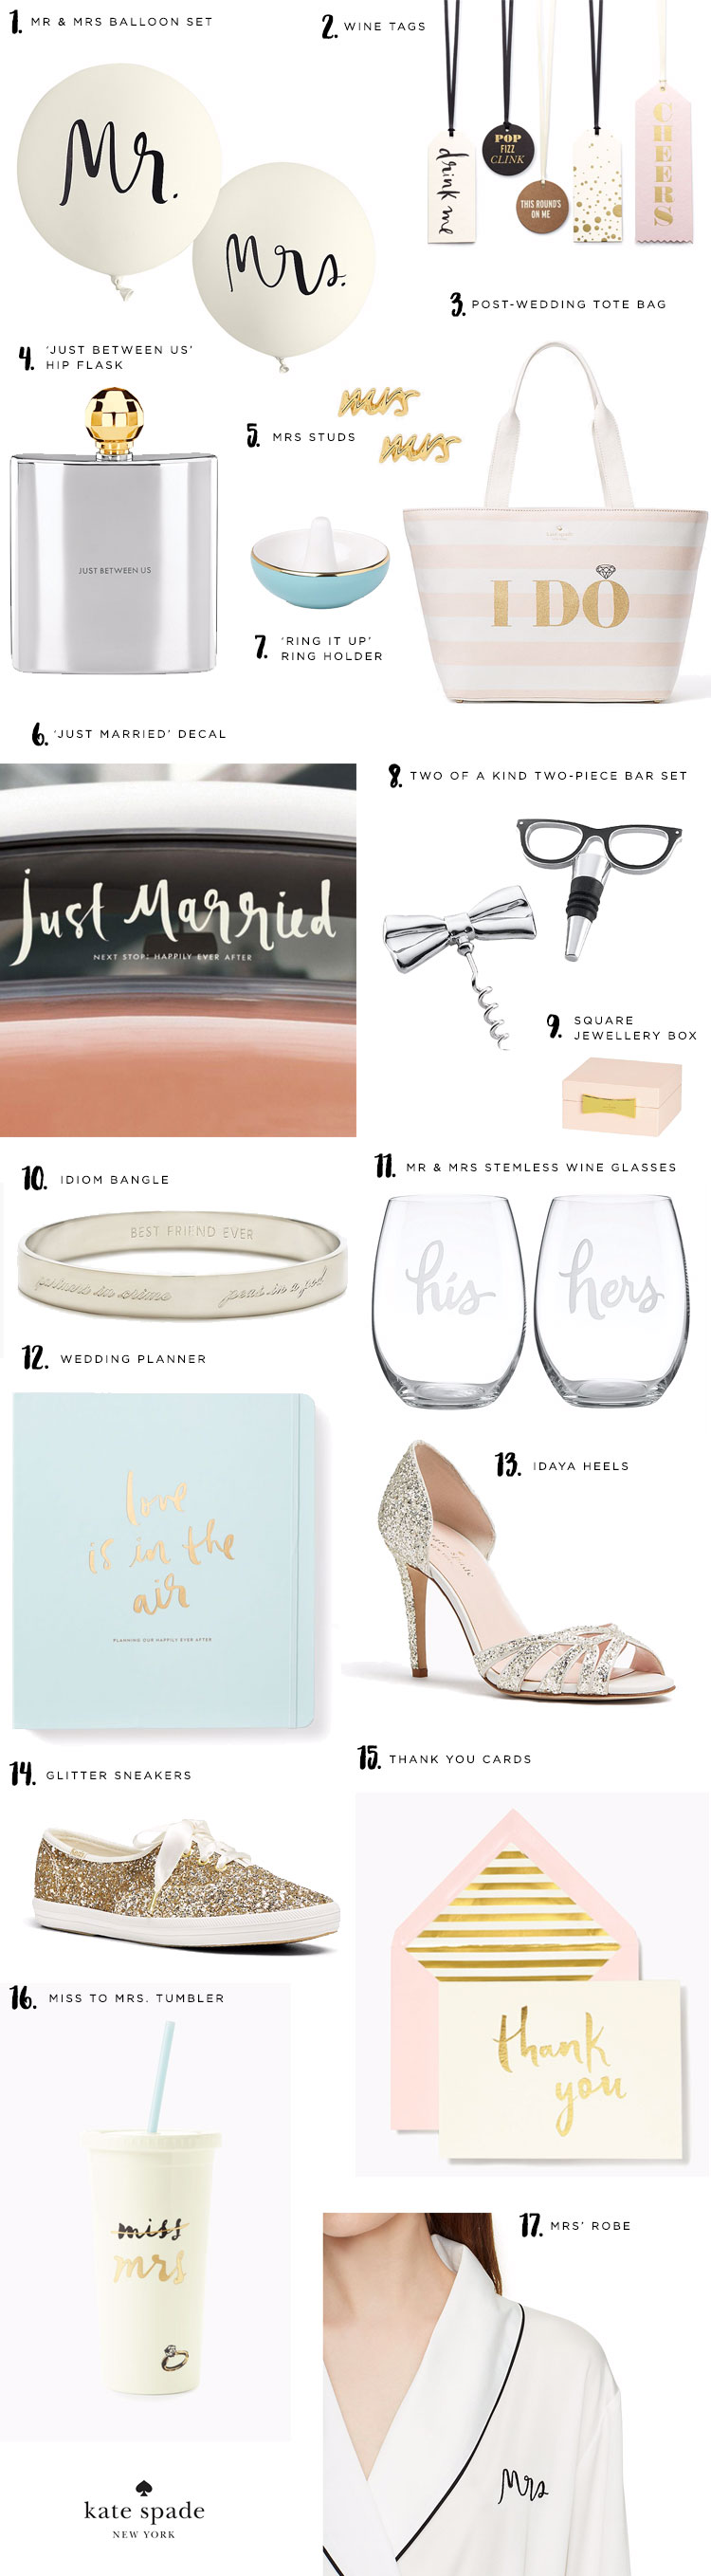 Kate-Spade-Bridal-Wedding